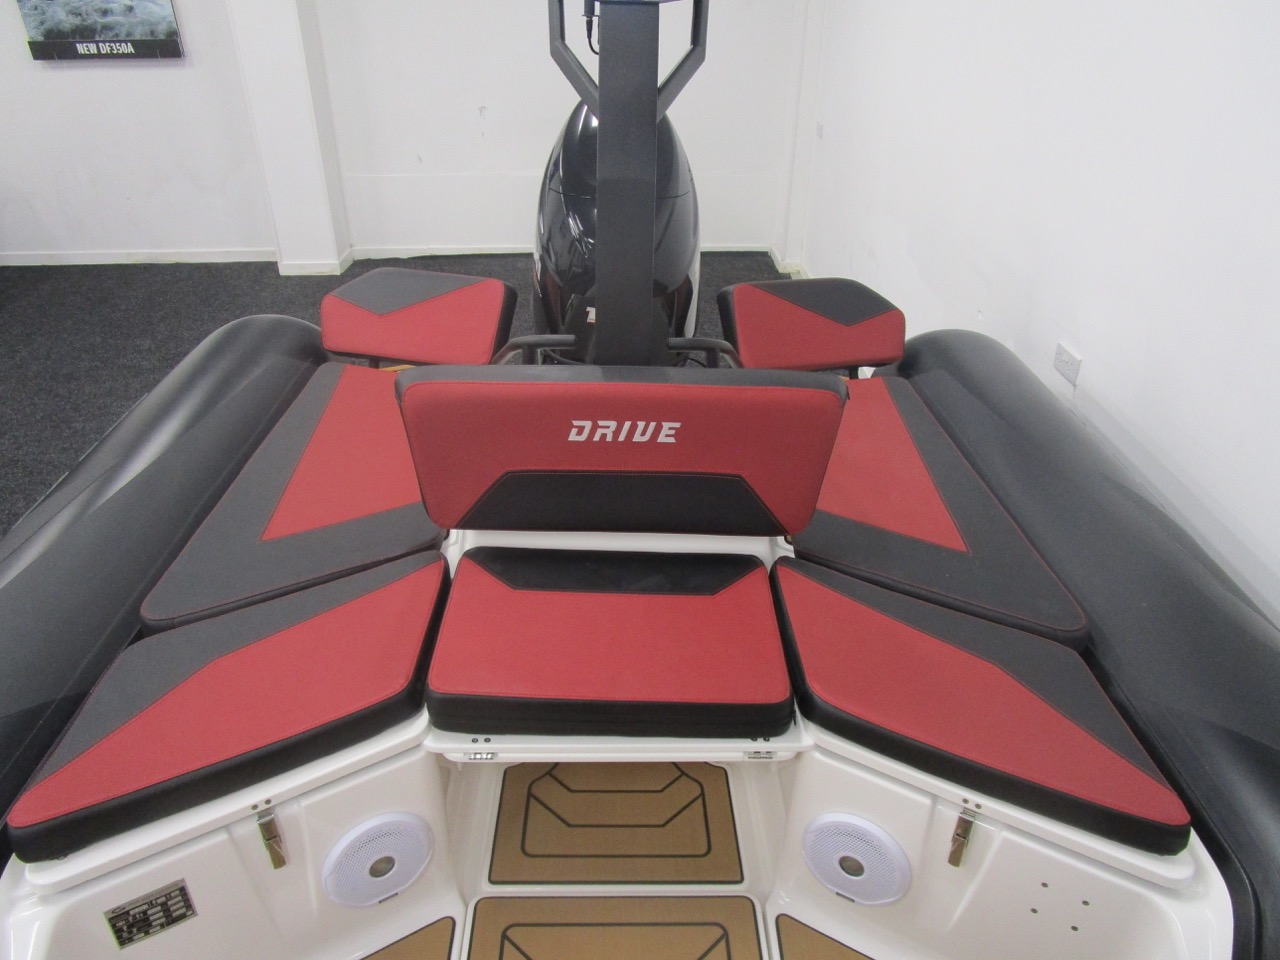 GRAND DRIVE D600 RIB rear sundeck only